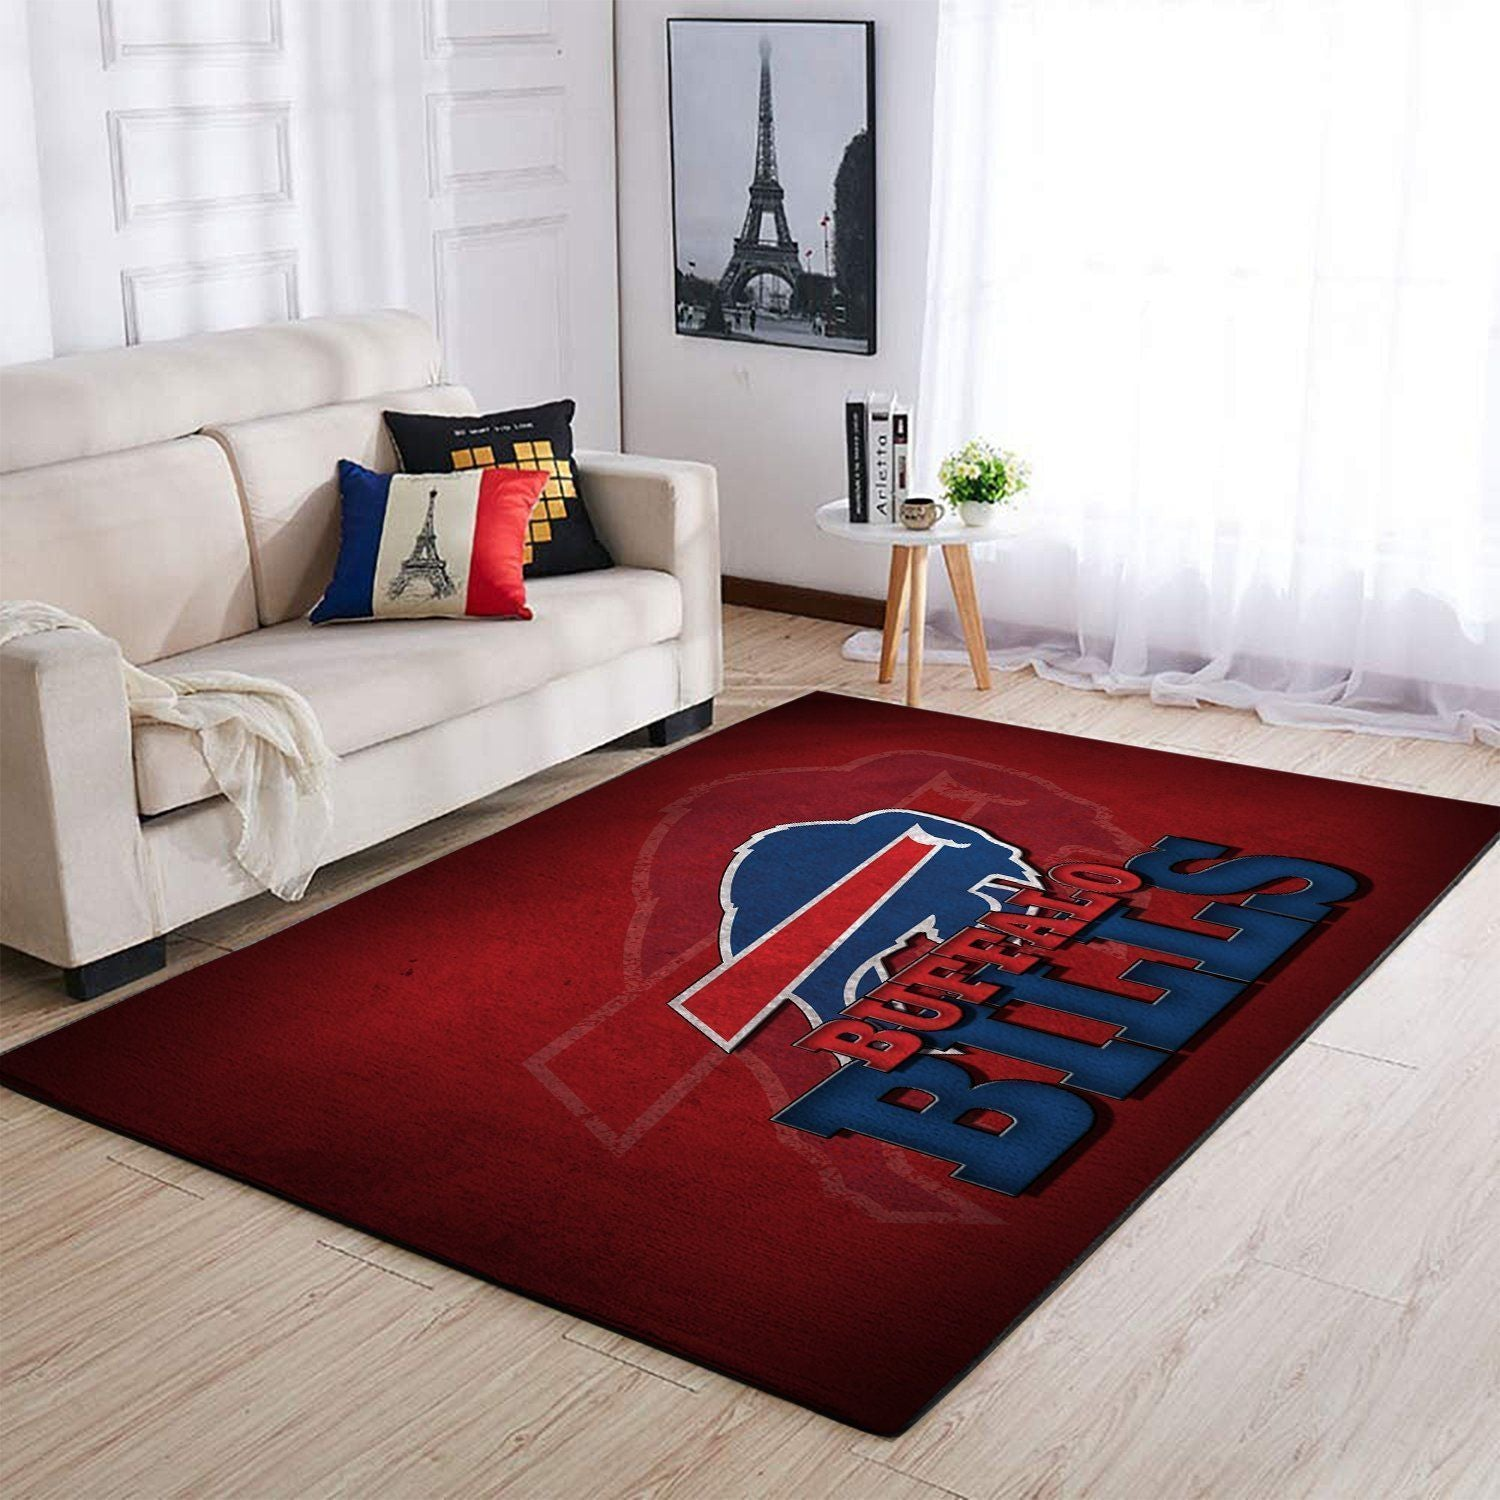 Buffalo Bills Area Rug, NFL Football Team Logo Carpet, Living Room Rugs Floor Decor 1910074